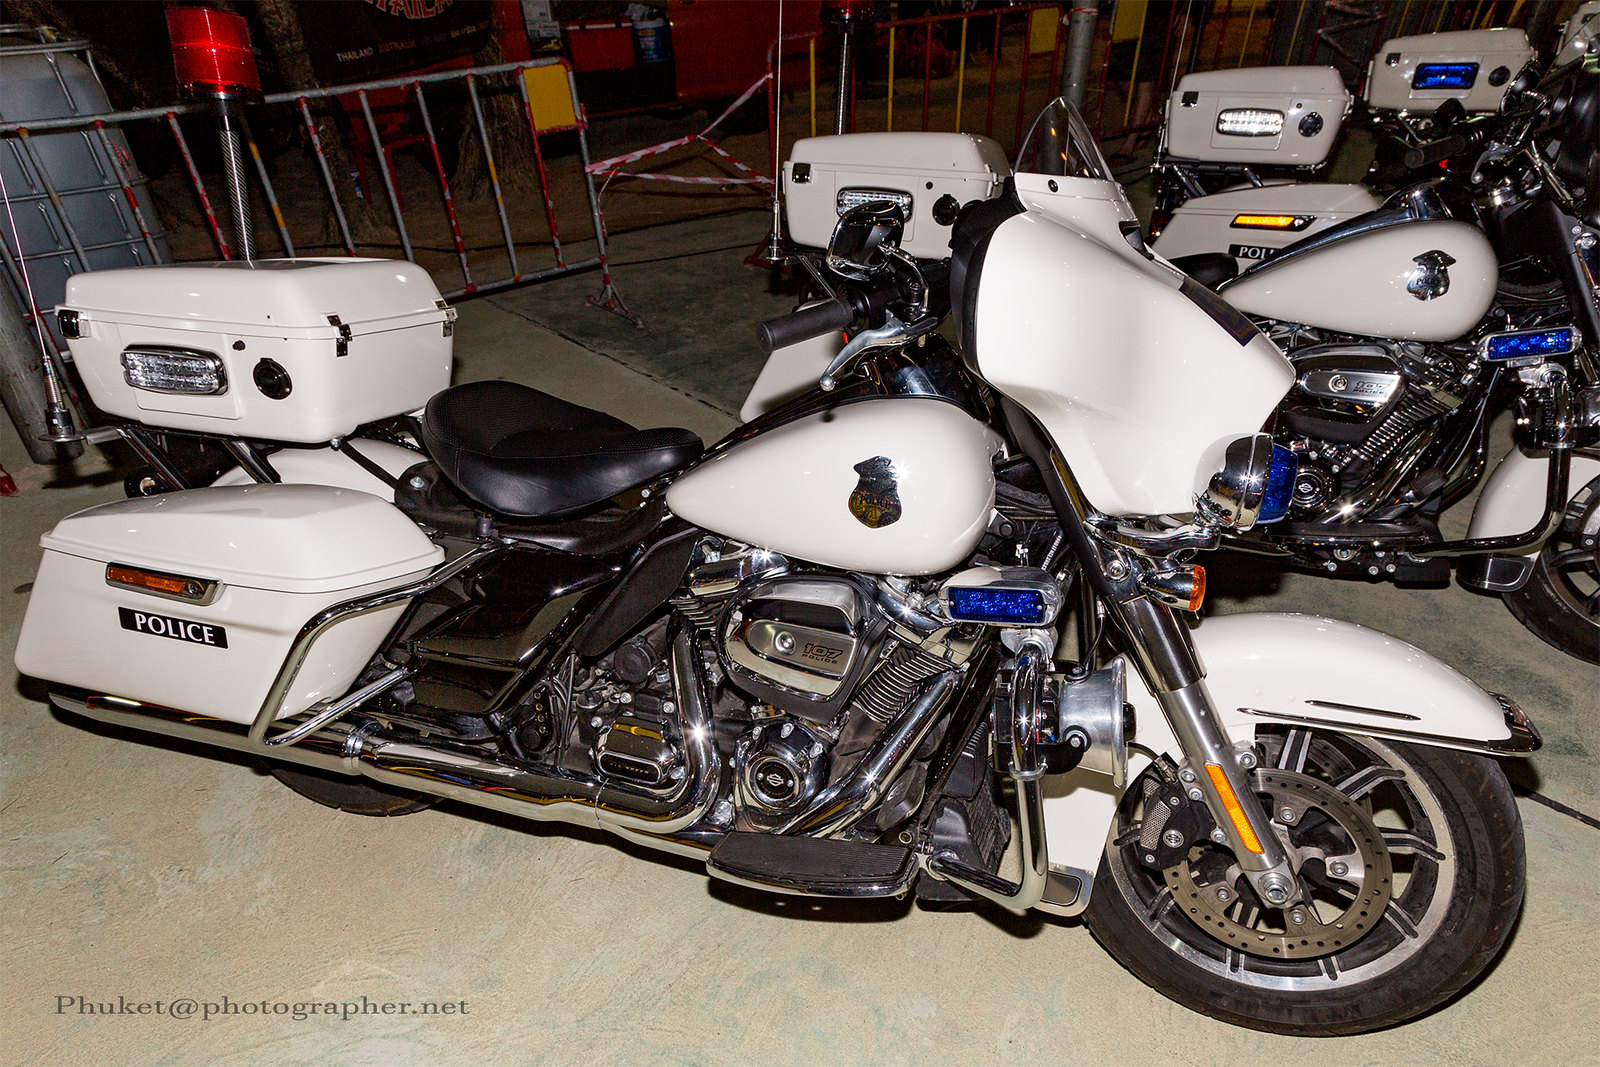 Big bikers hit with new rules